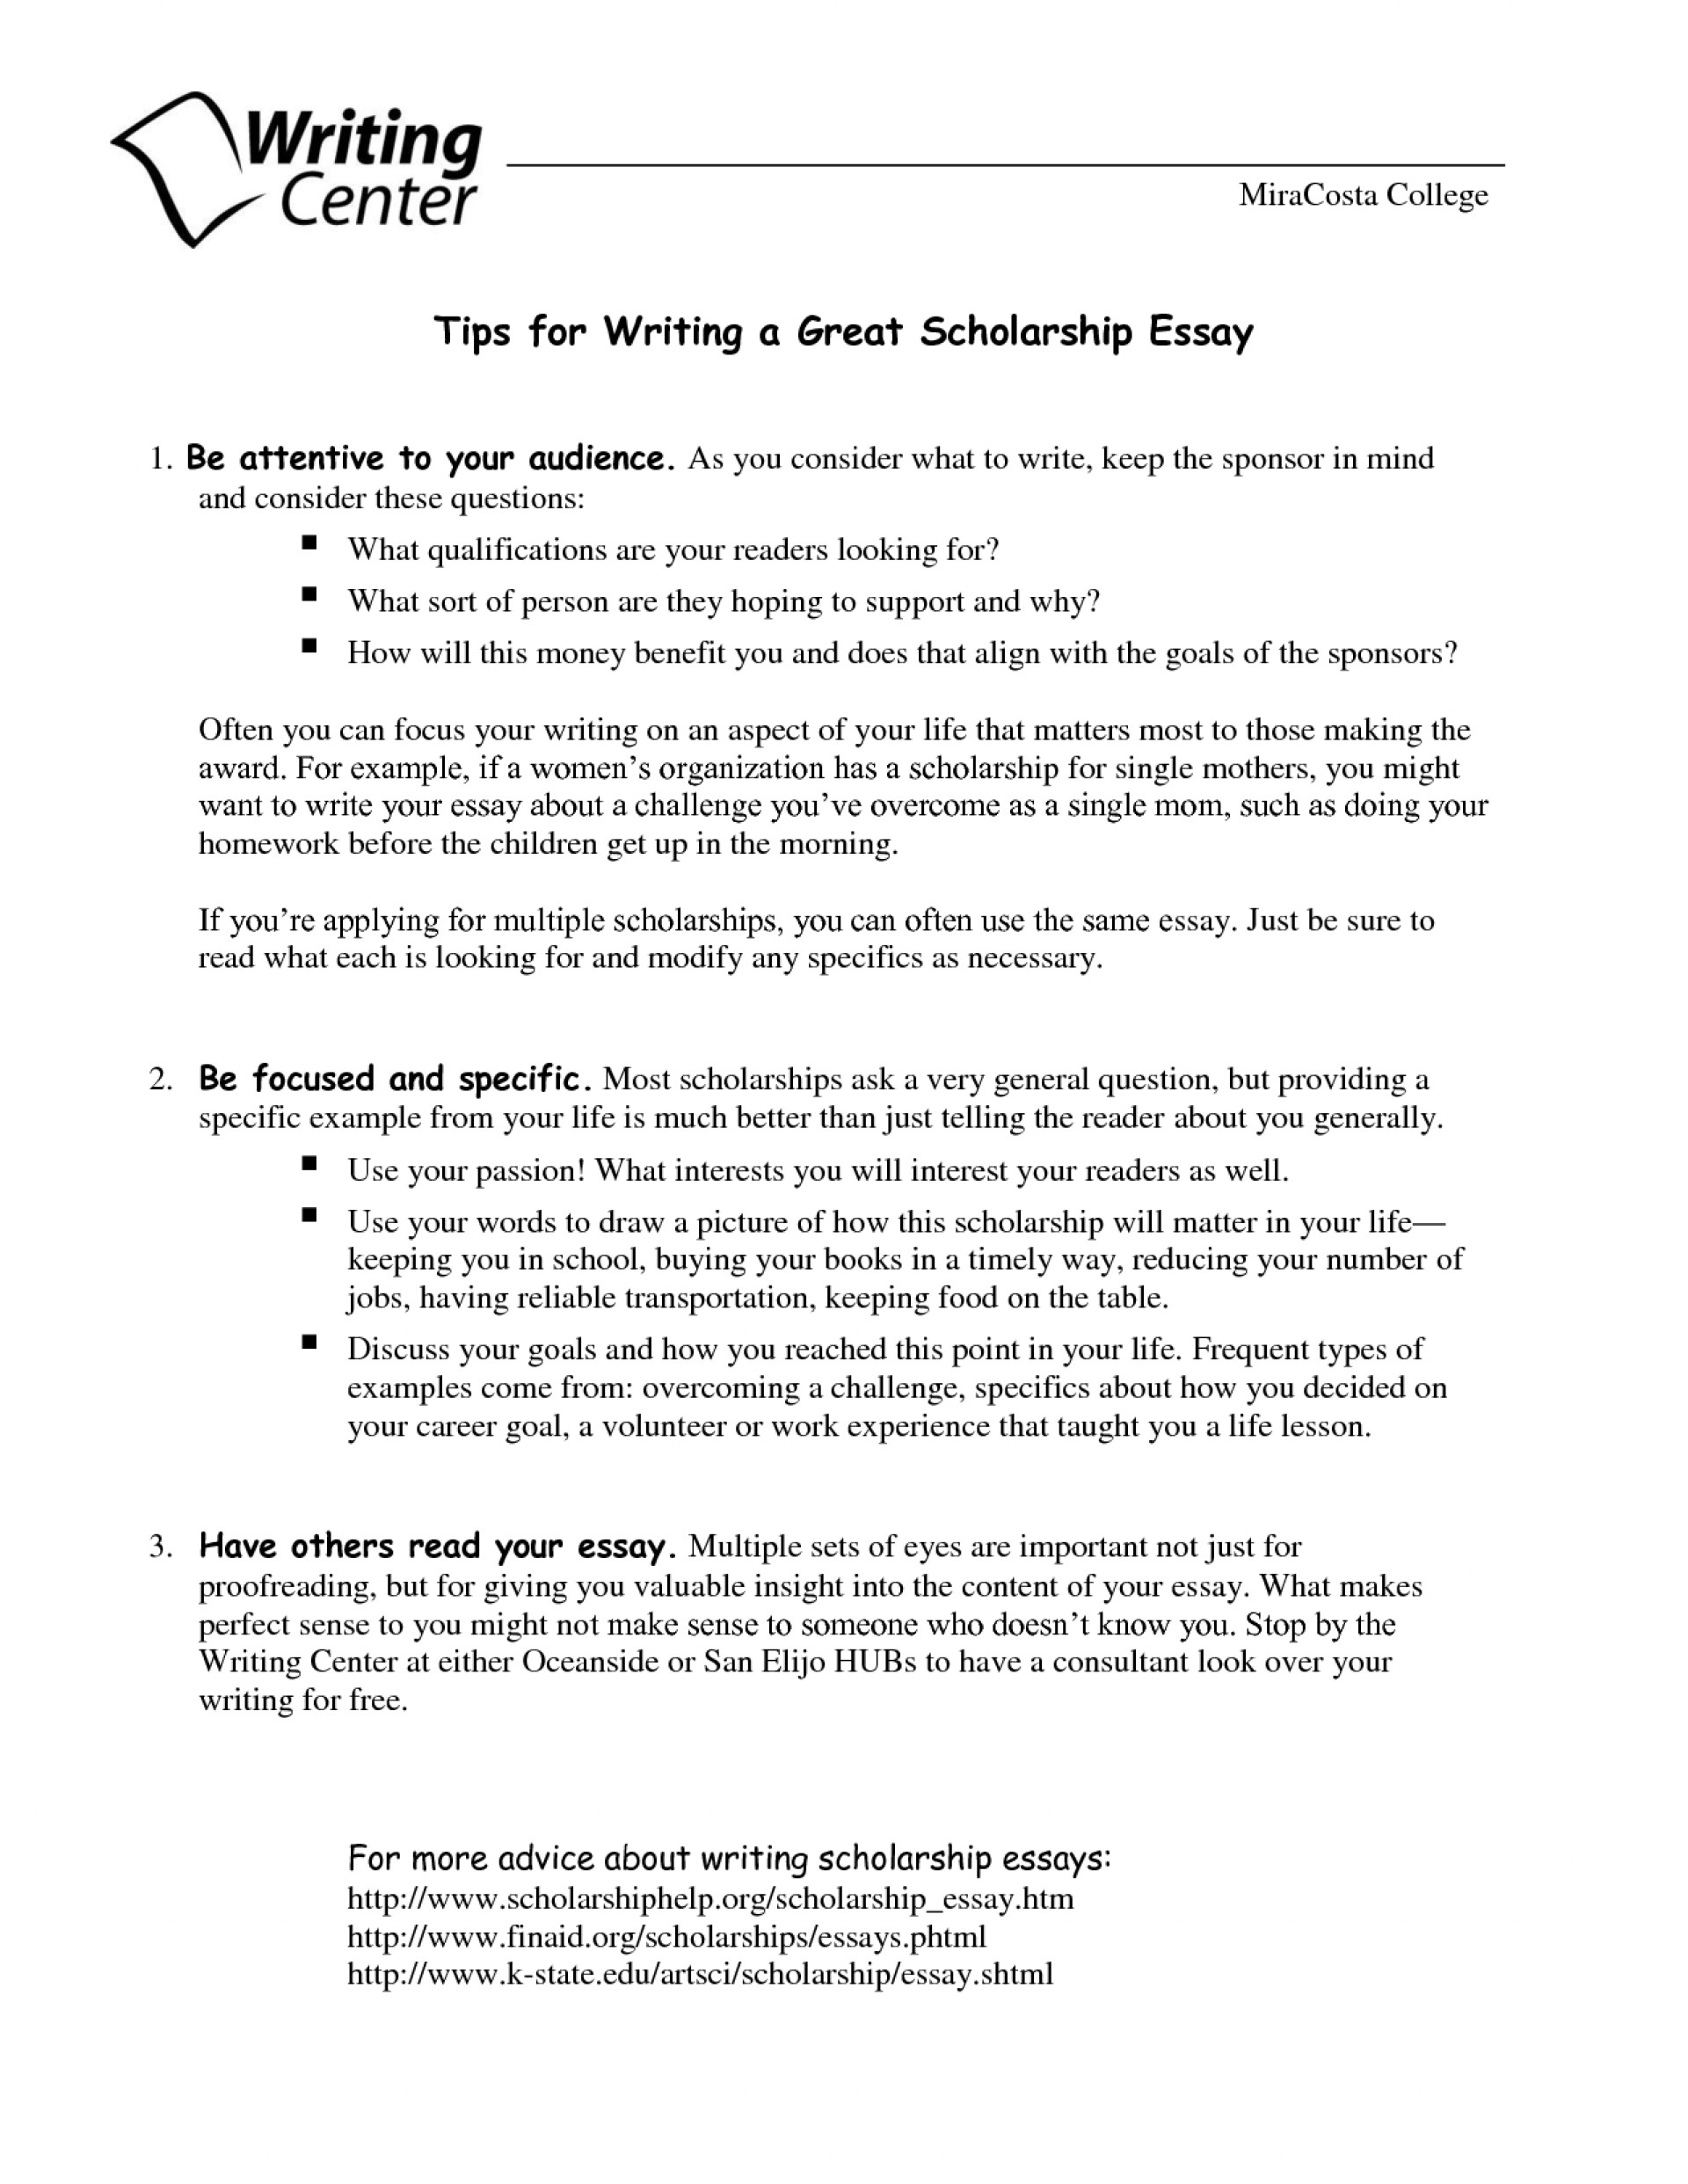 018 Scholarships With Essays N8cudozdpd Essay Singular Without Writing For High School Juniors Class Of 2020 No 2019 1920